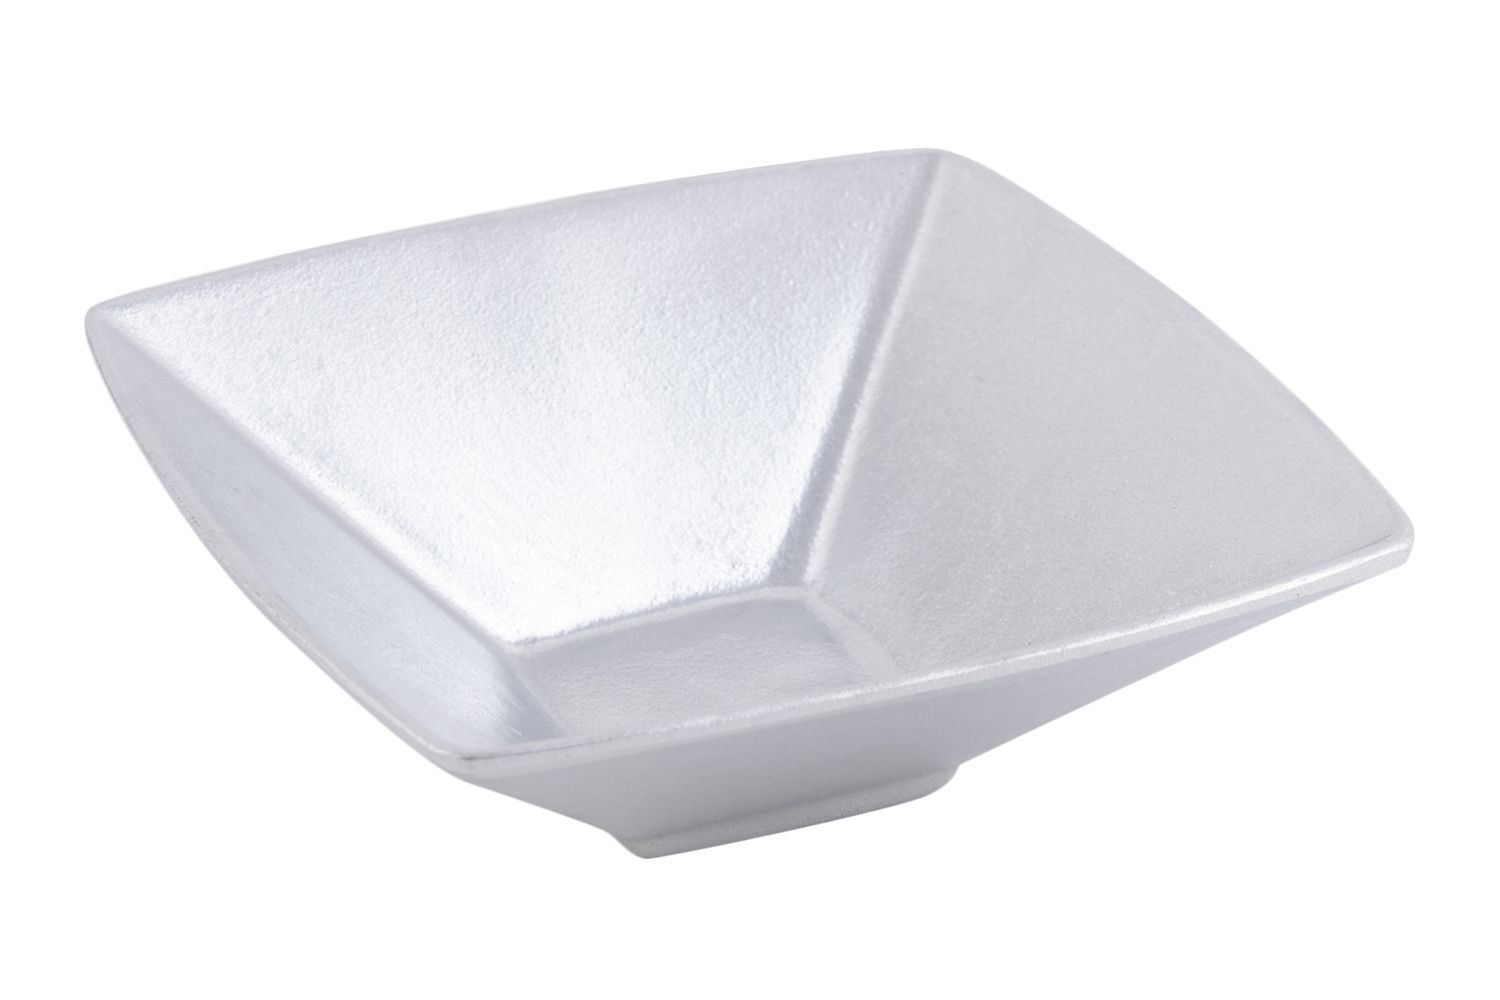 Bon Chef 9110P Square Salad Bowl, Pewter Glo 12 oz., Set of 12